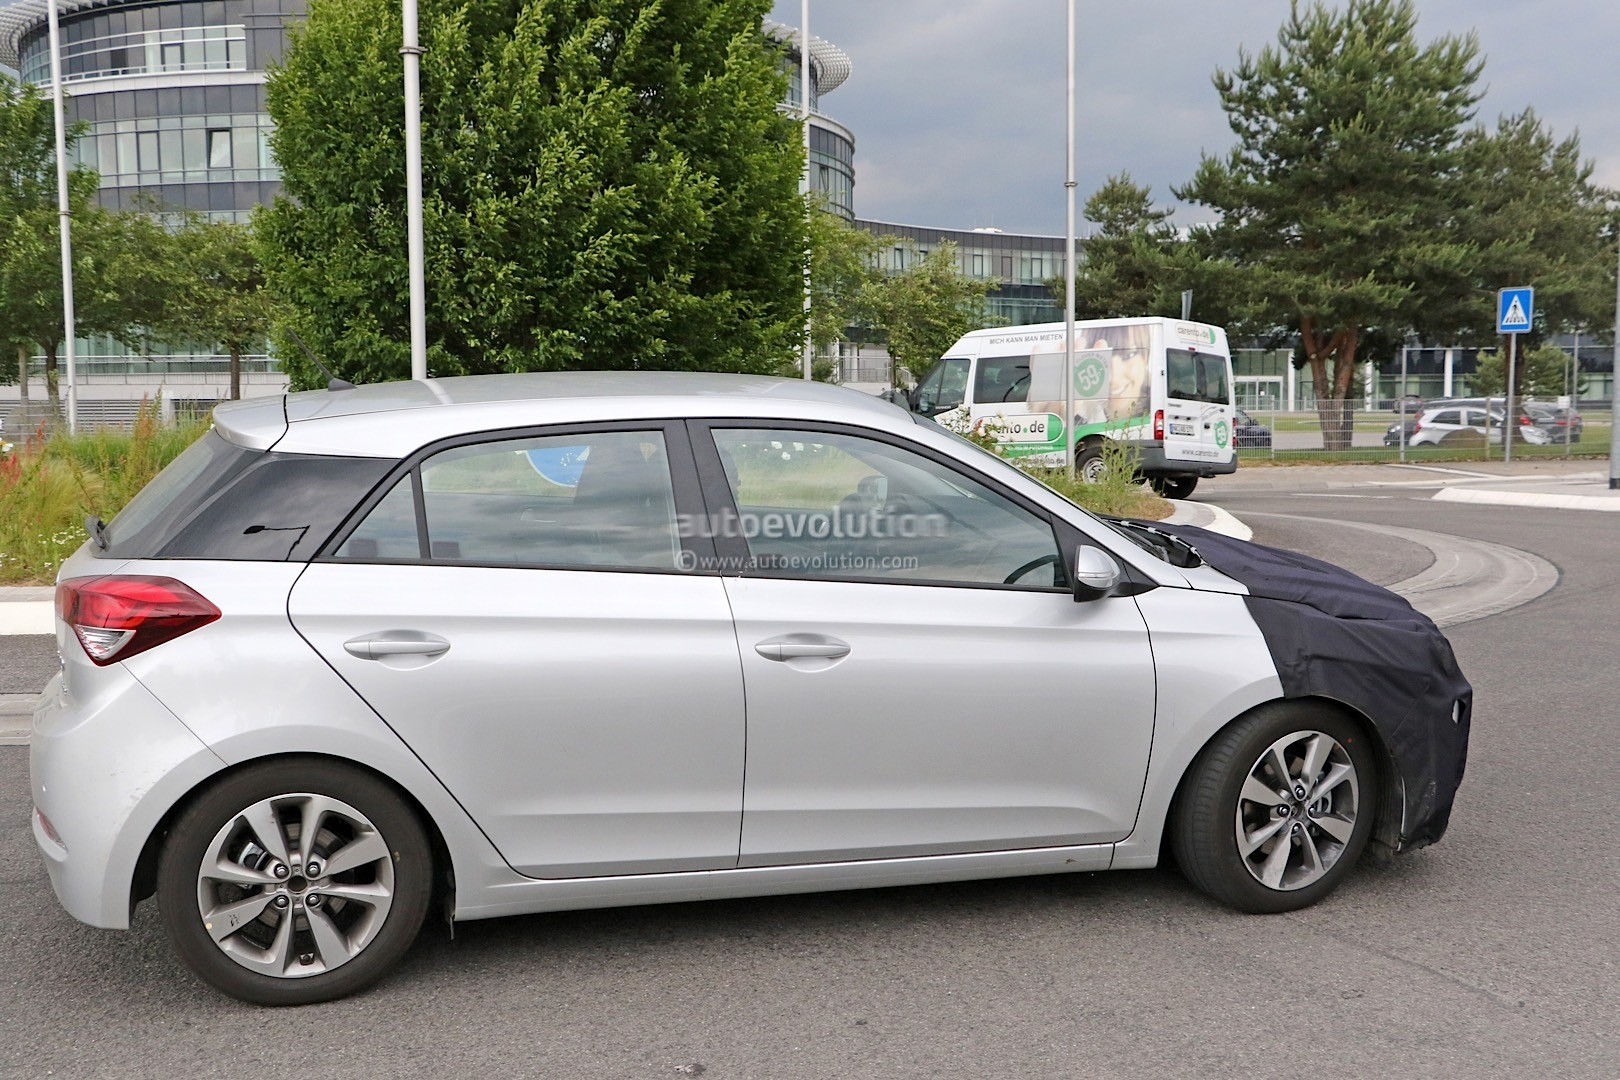 2018 - [Hyundai] I20 restylée Spyshots-hyundai-i20-prototype-spied-we-think-it-s-a-facelifted-version_4